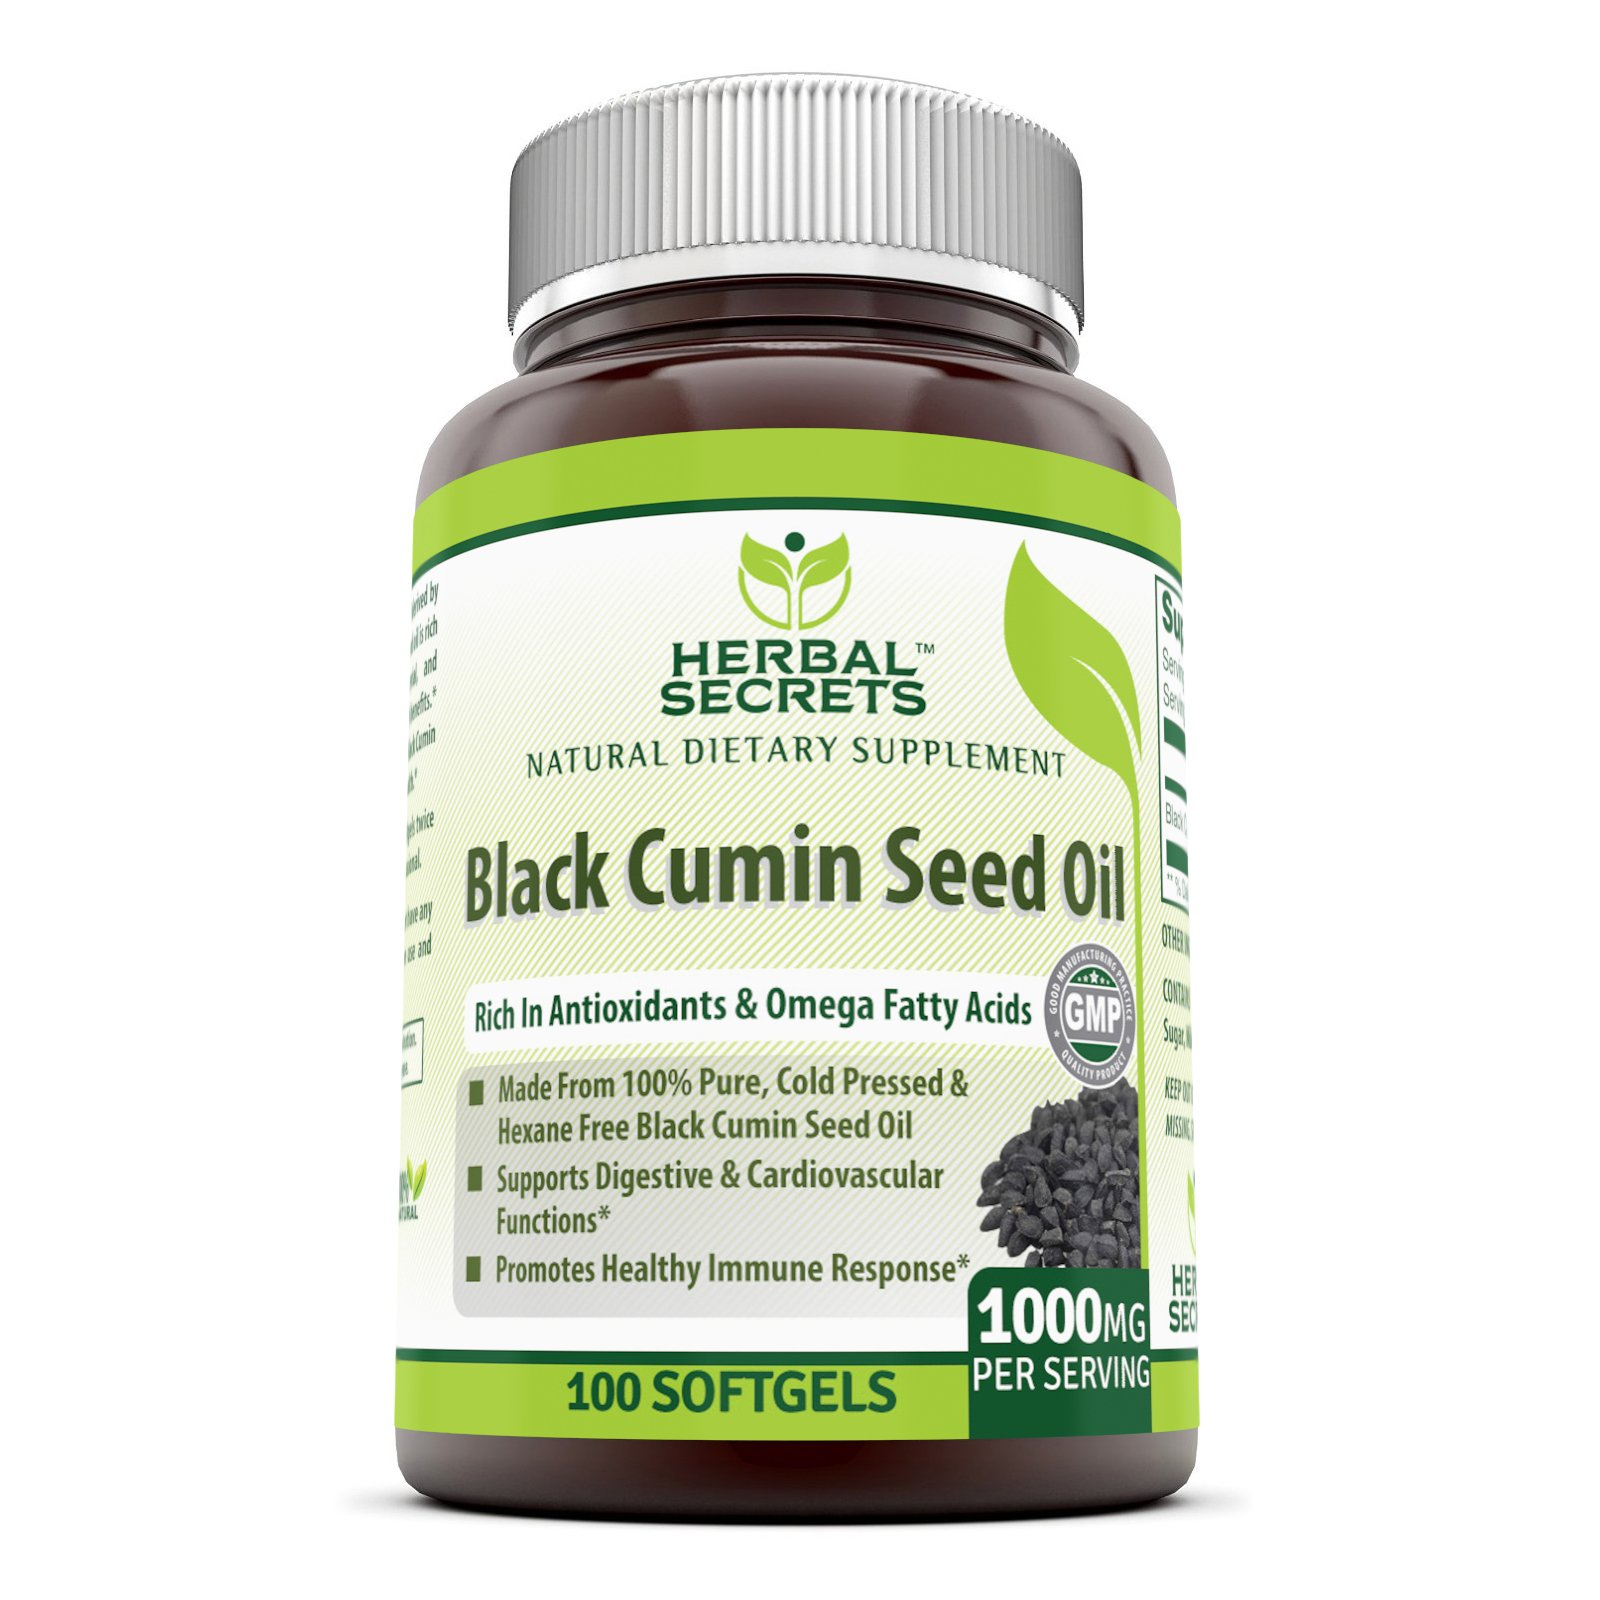 Herbal Secrets 100% Pure Black Cumin Seed Oil - 1000 Mg,100 Softgels - New Improved Formula - Supports Cardiovascular & Digestive Function